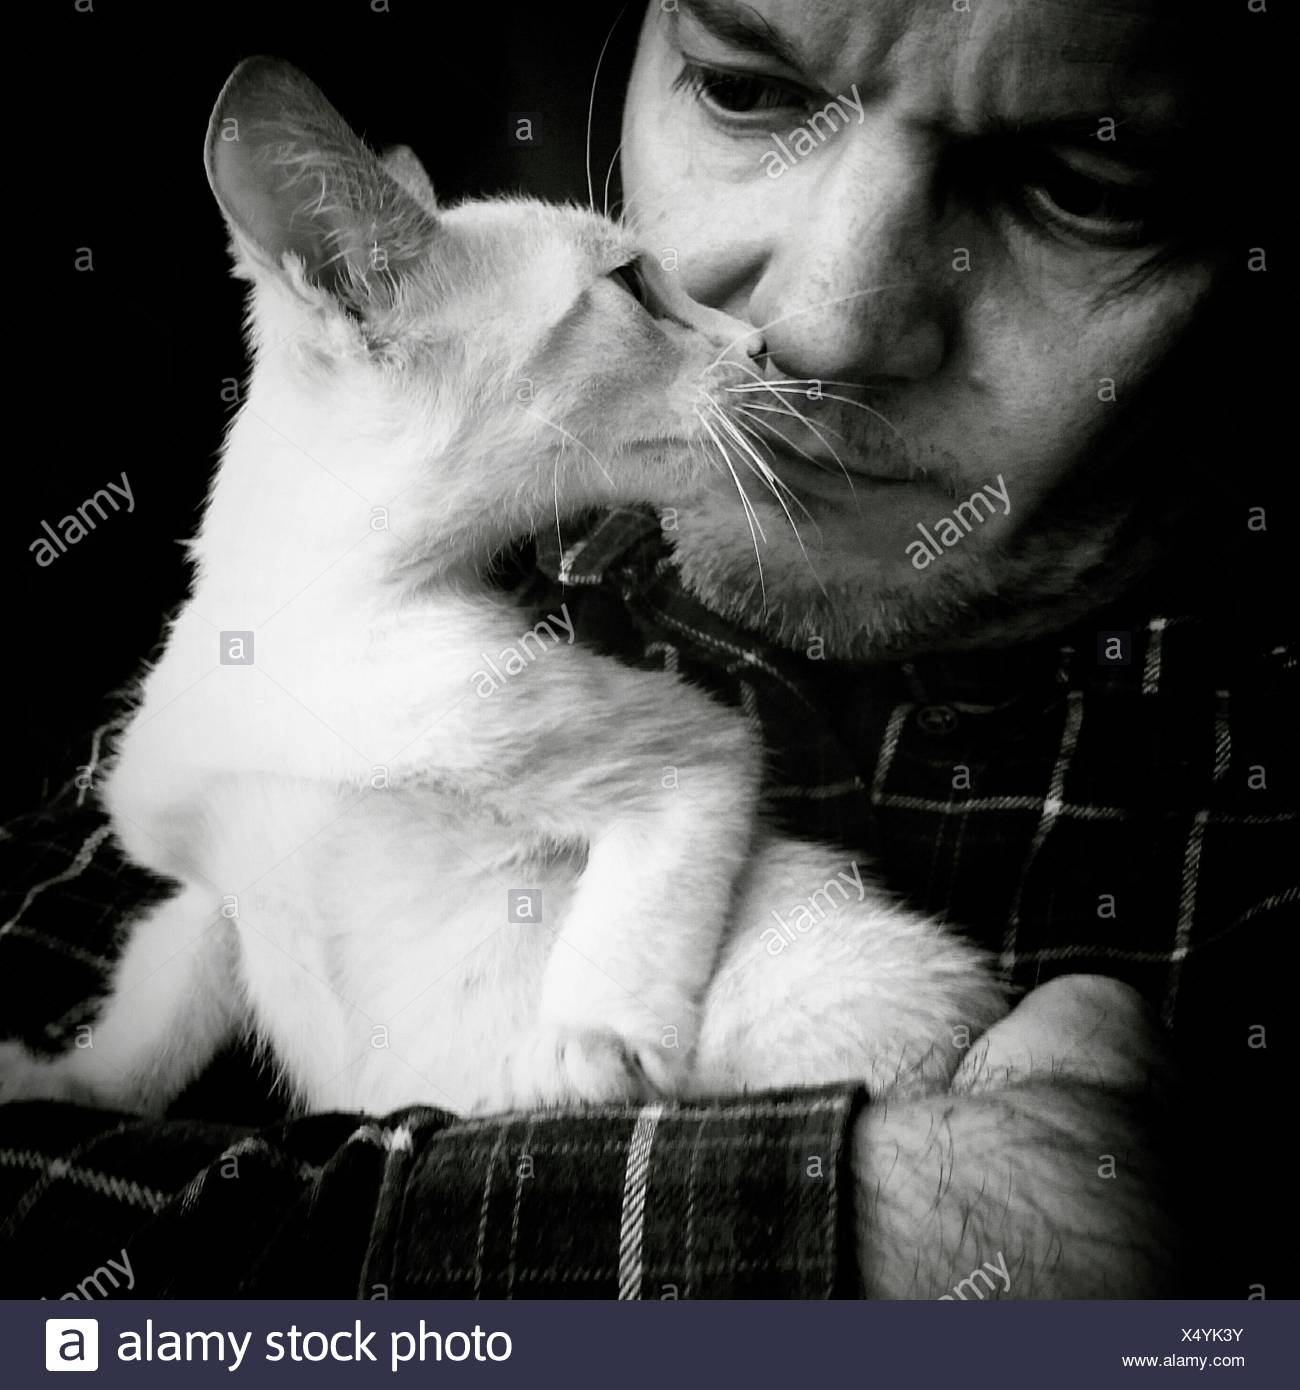 Man Holding While Staring White Cat - Stock Image